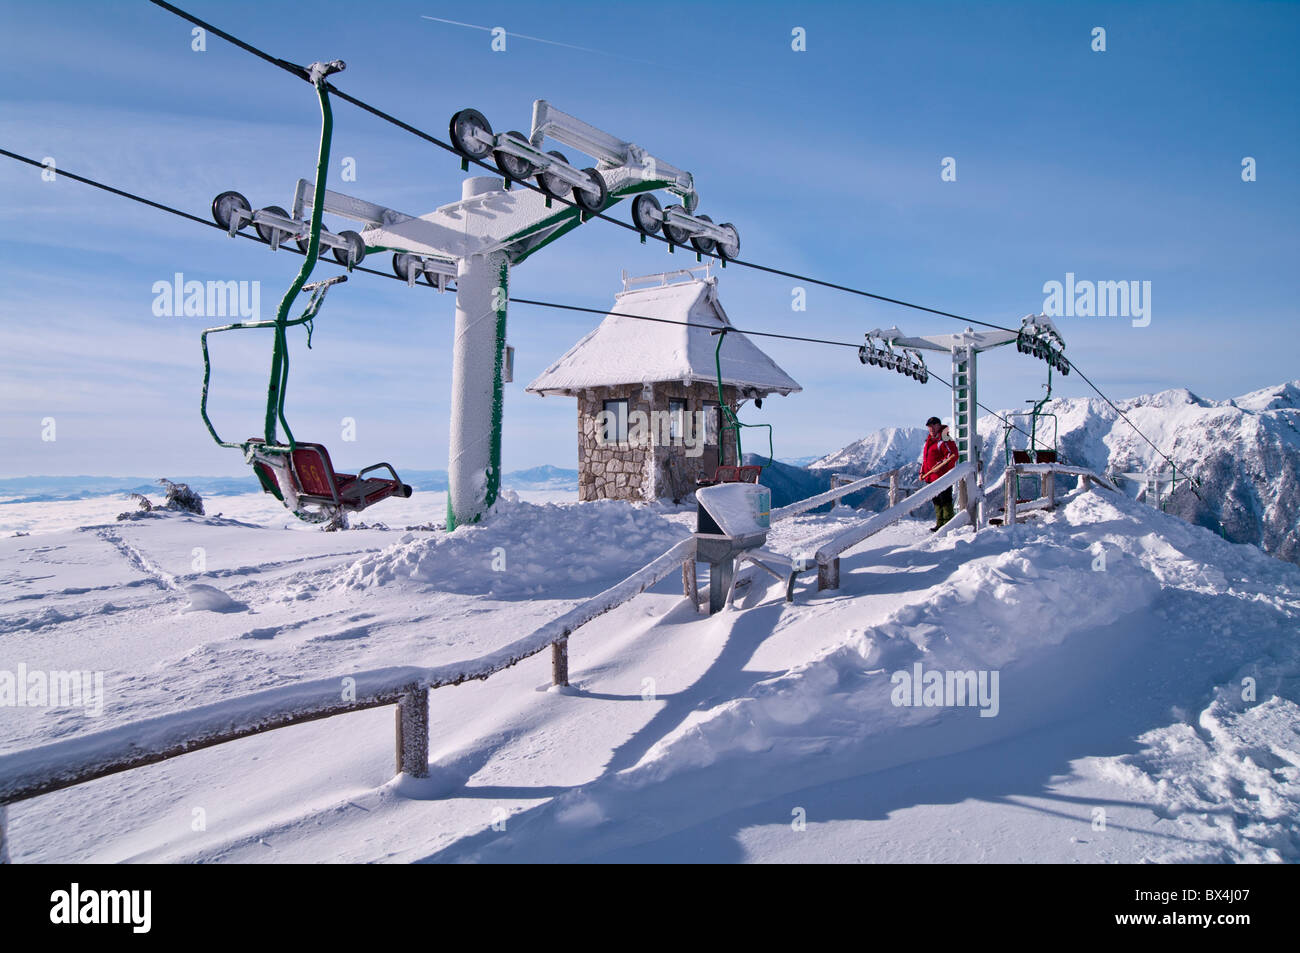 buy ski lift chair steelcase think review line at the center of velika planina